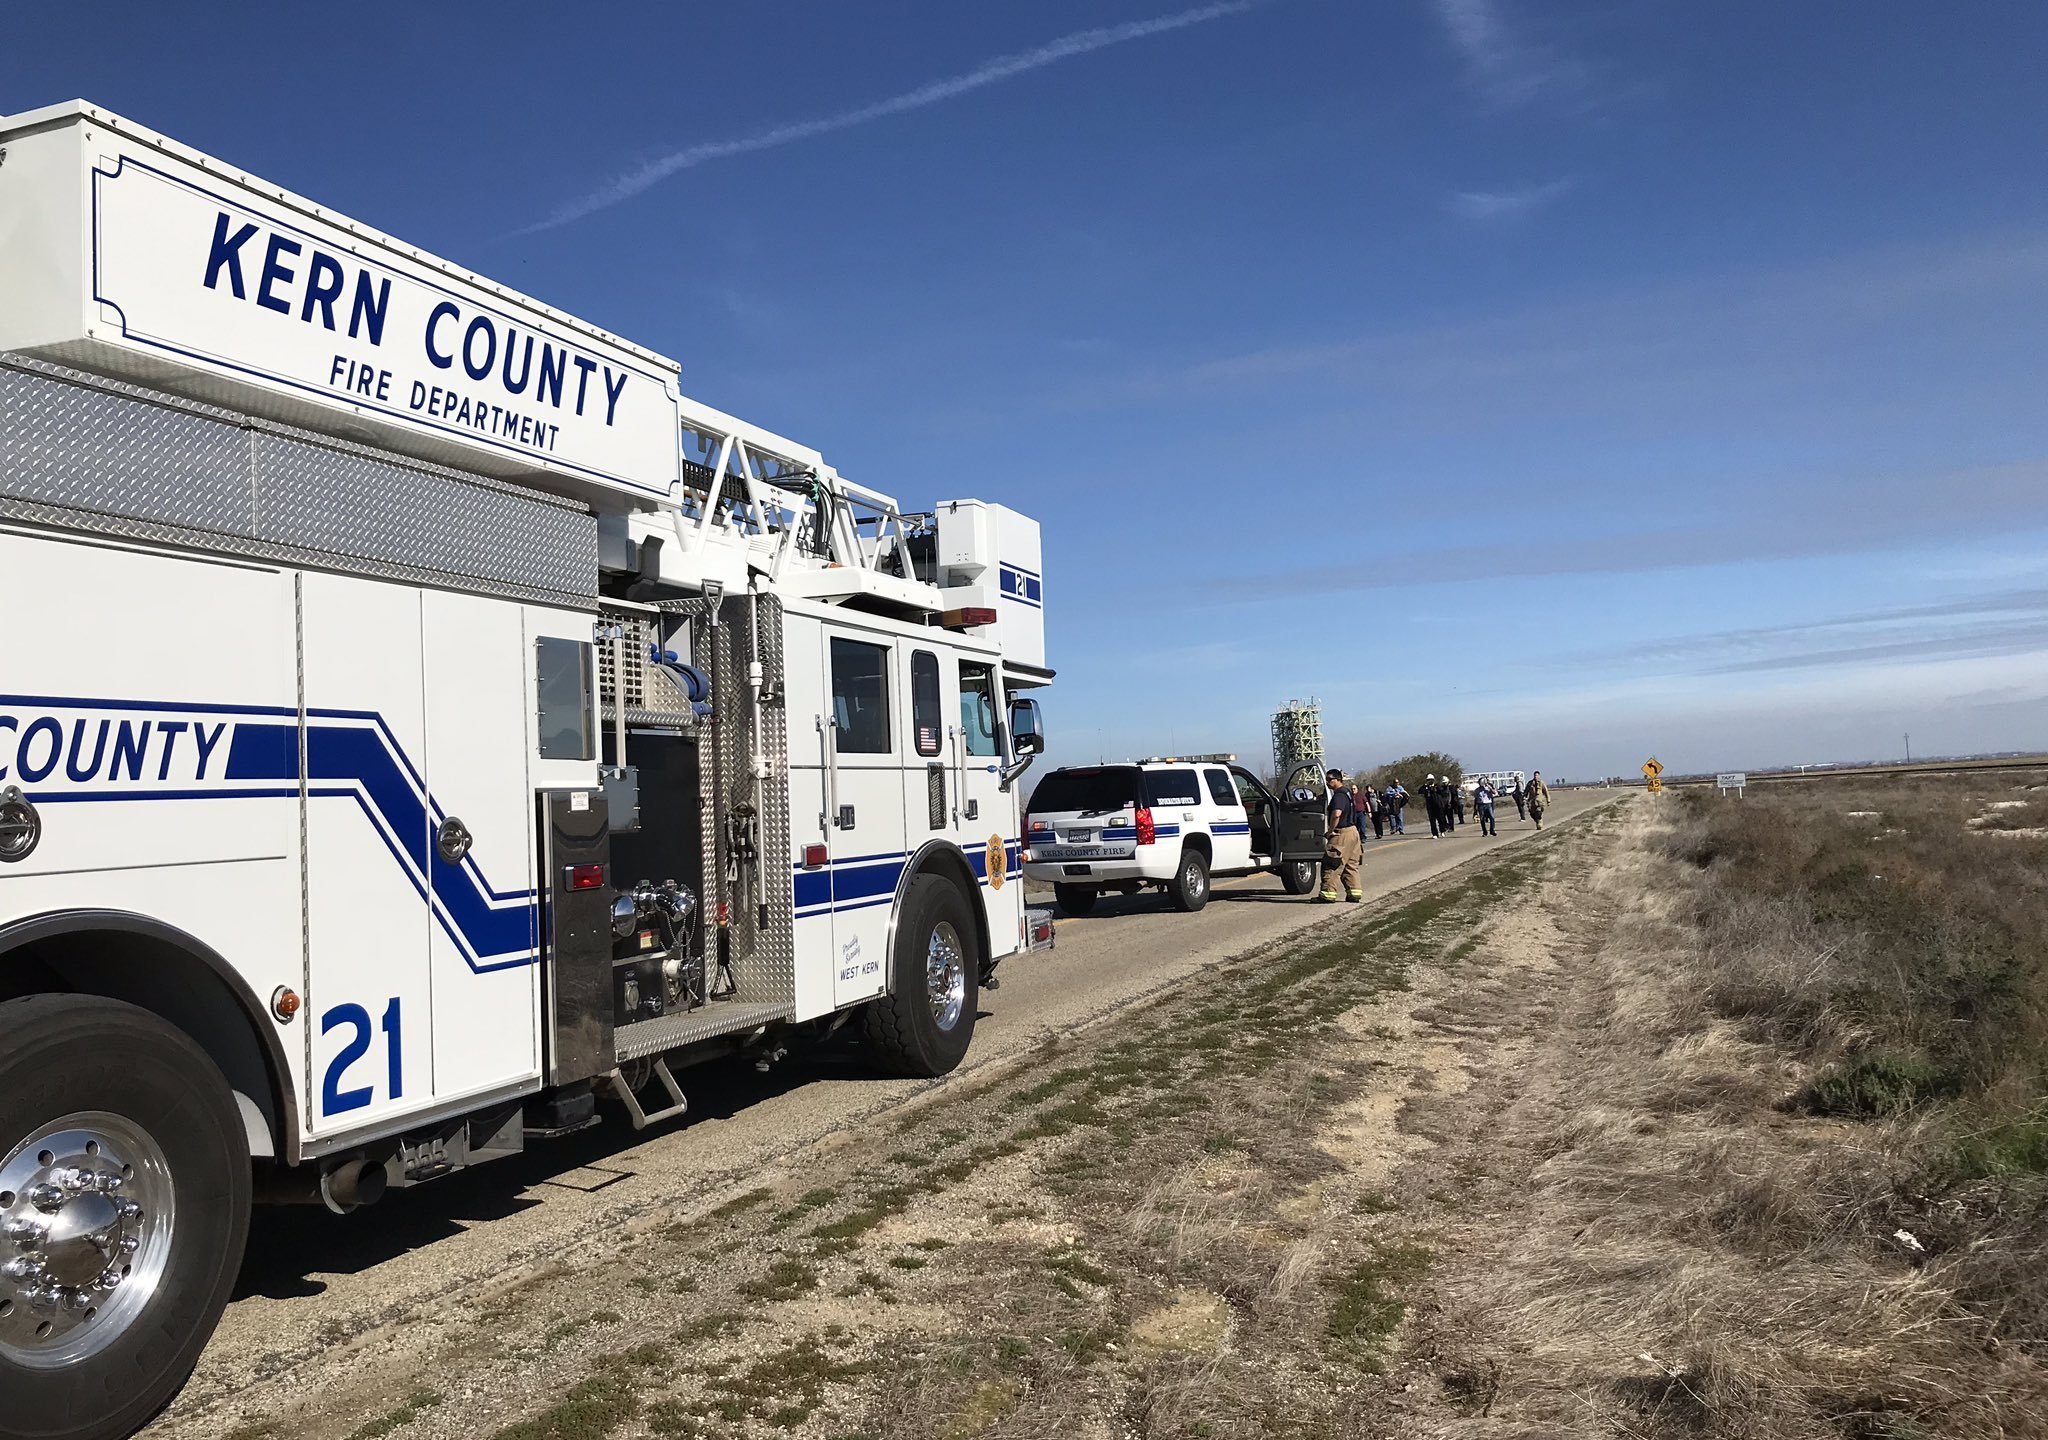 Kern County Fire Department officials tweeted this image of their response to a chemical spill near Taft on Jan. 22, 2020.